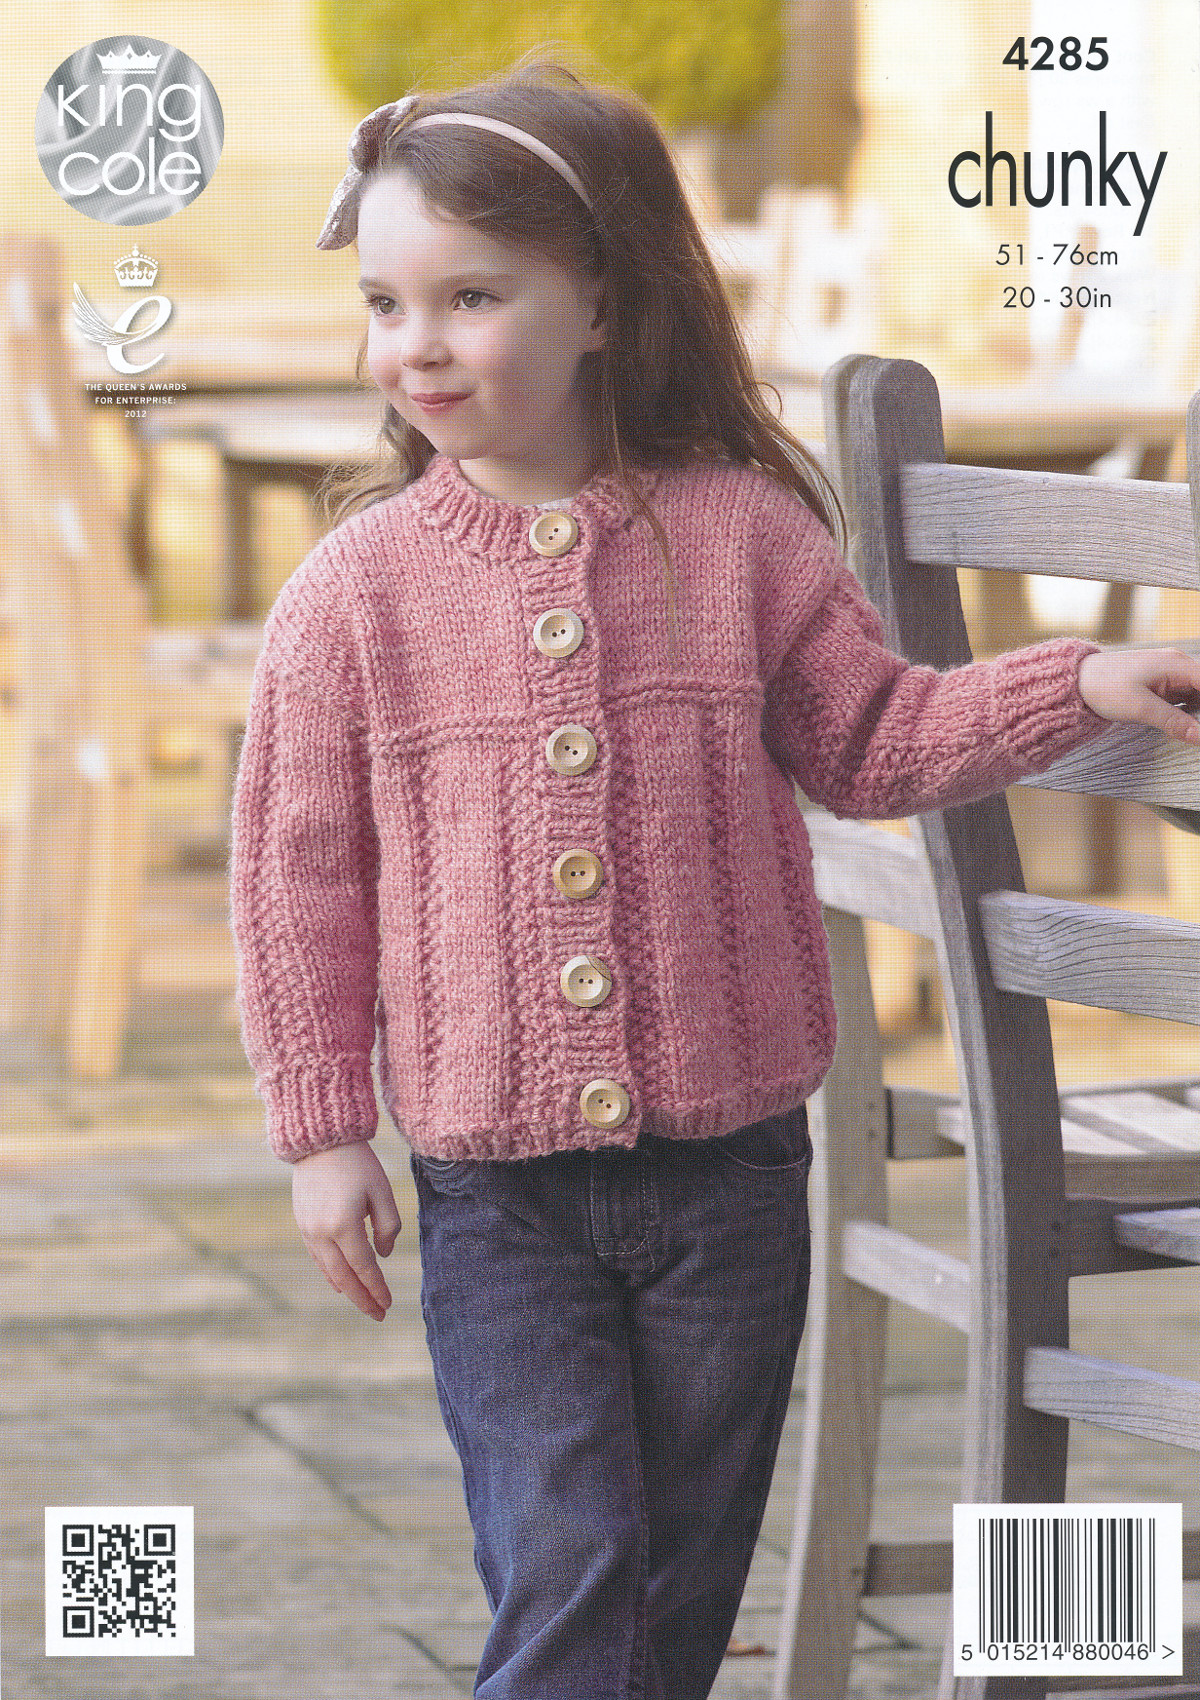 Kids Chunky Knitting Pattern King Cole Childrens Sweater Jumper Cardigan 4285...